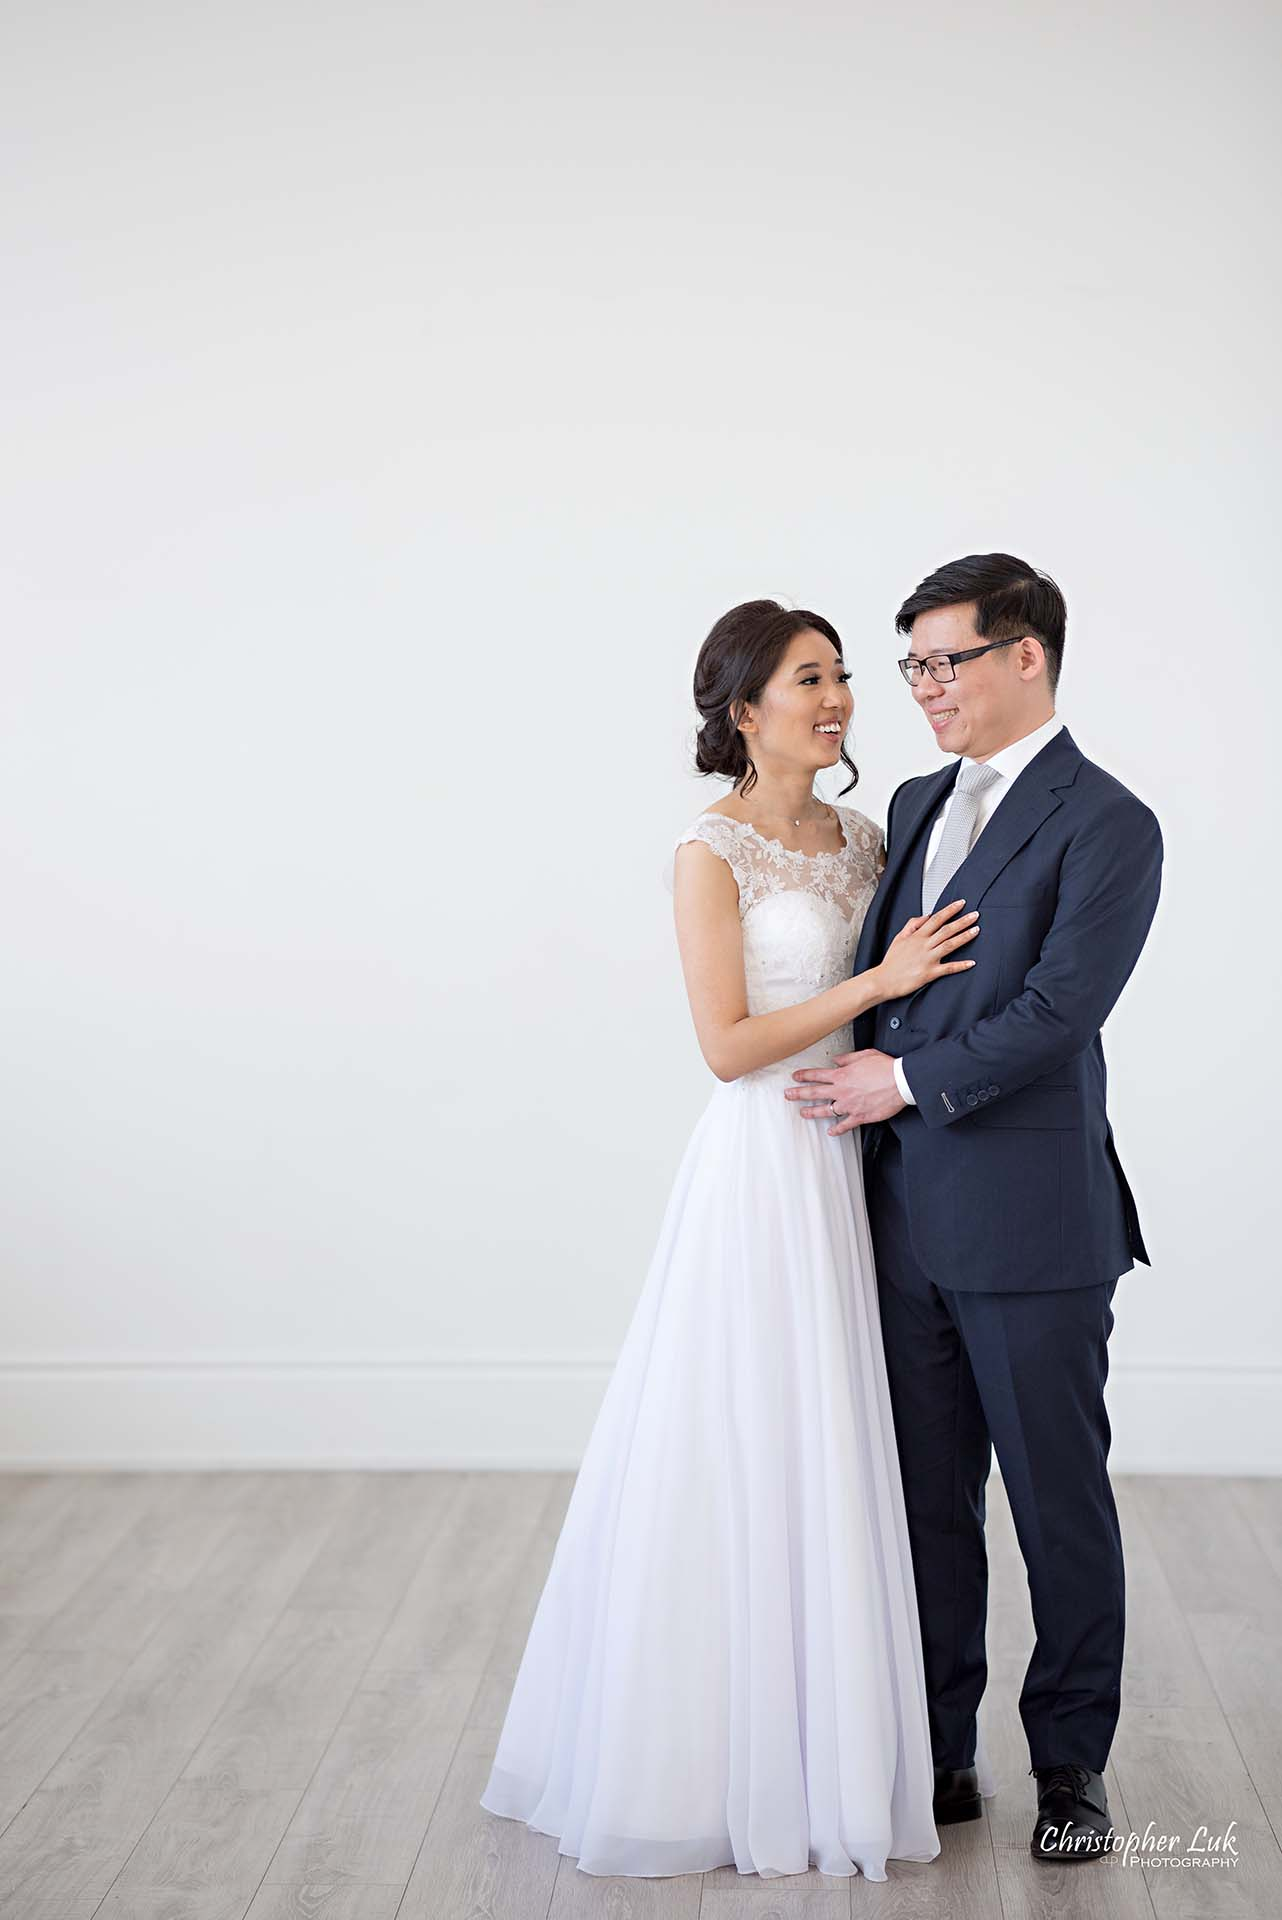 Christopher Luk Toronto Wedding Photographer - Mint Room Studios Bride Groom Natural Candid Photojournalistic Conservatory Ballroom Hug Laugh Looking Each Other Full Body